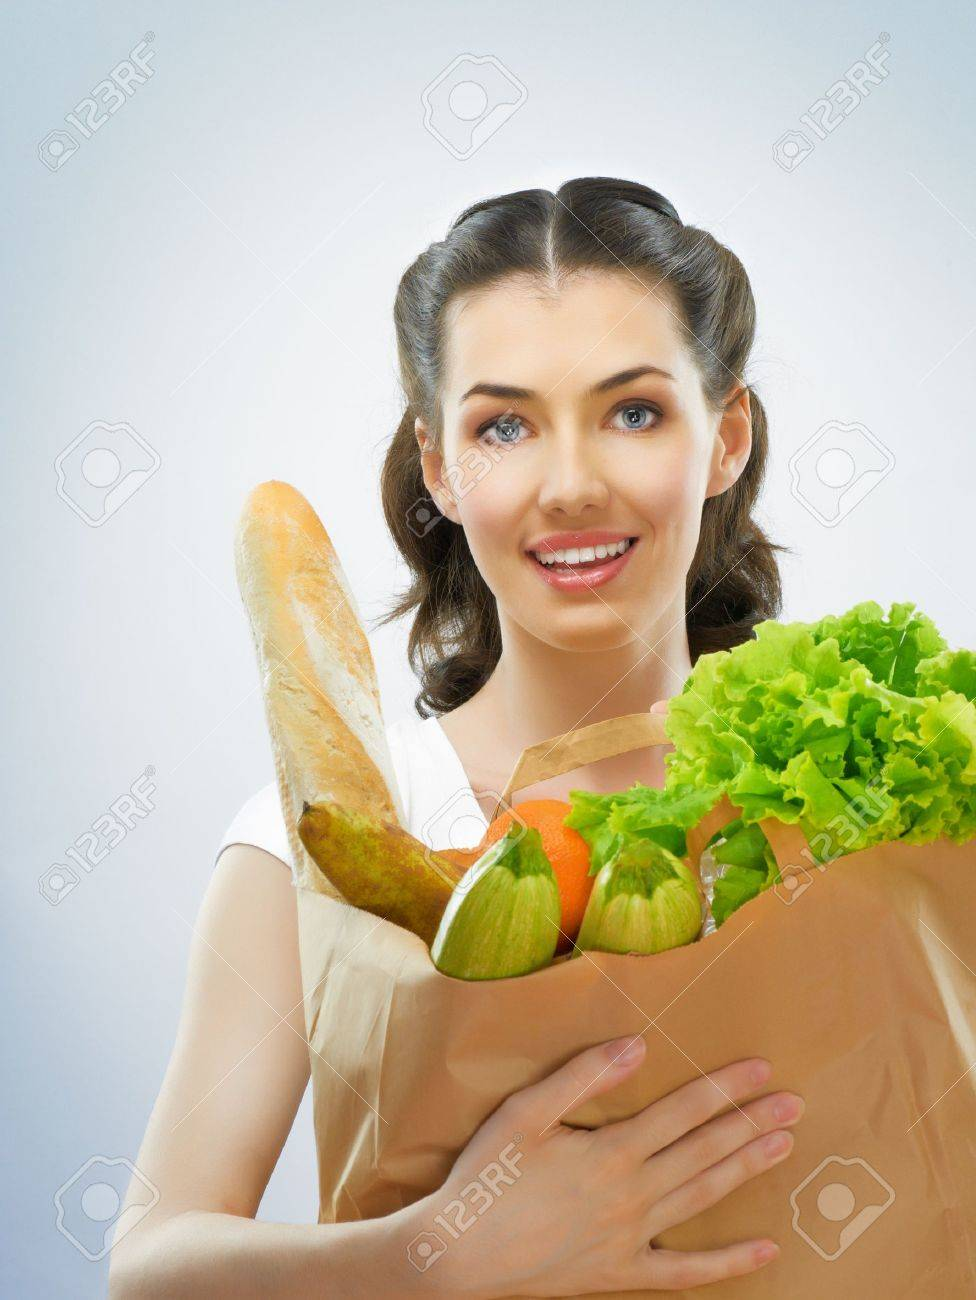 girl holding a bag of groceries Stock Photo - 9447180